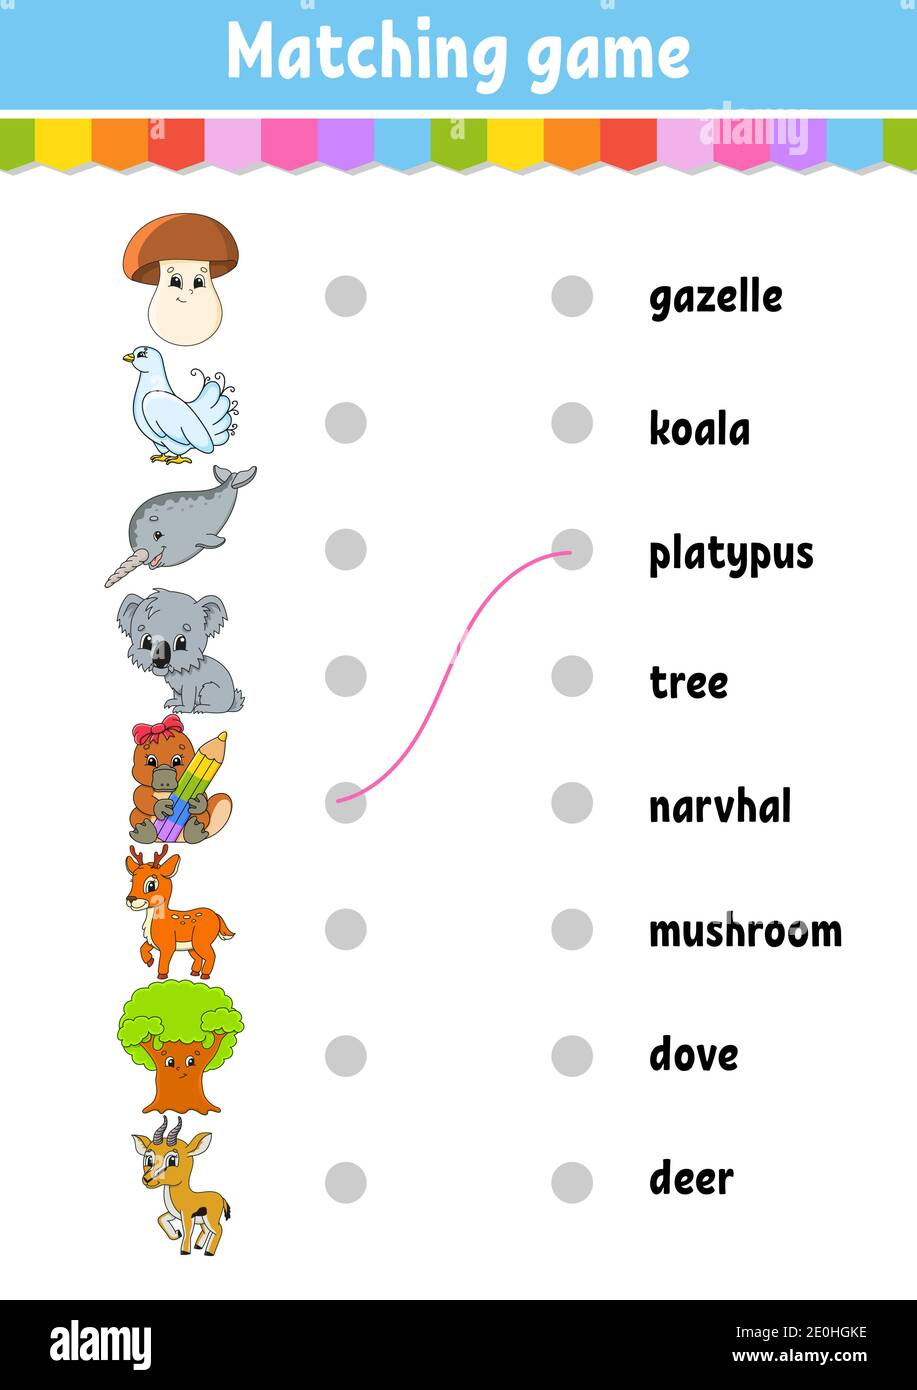 Matching Game For Kids Learn English Words Education Developing Worksheet Color Activity Page Cartoon Character Stock Vector Image Art Alamy